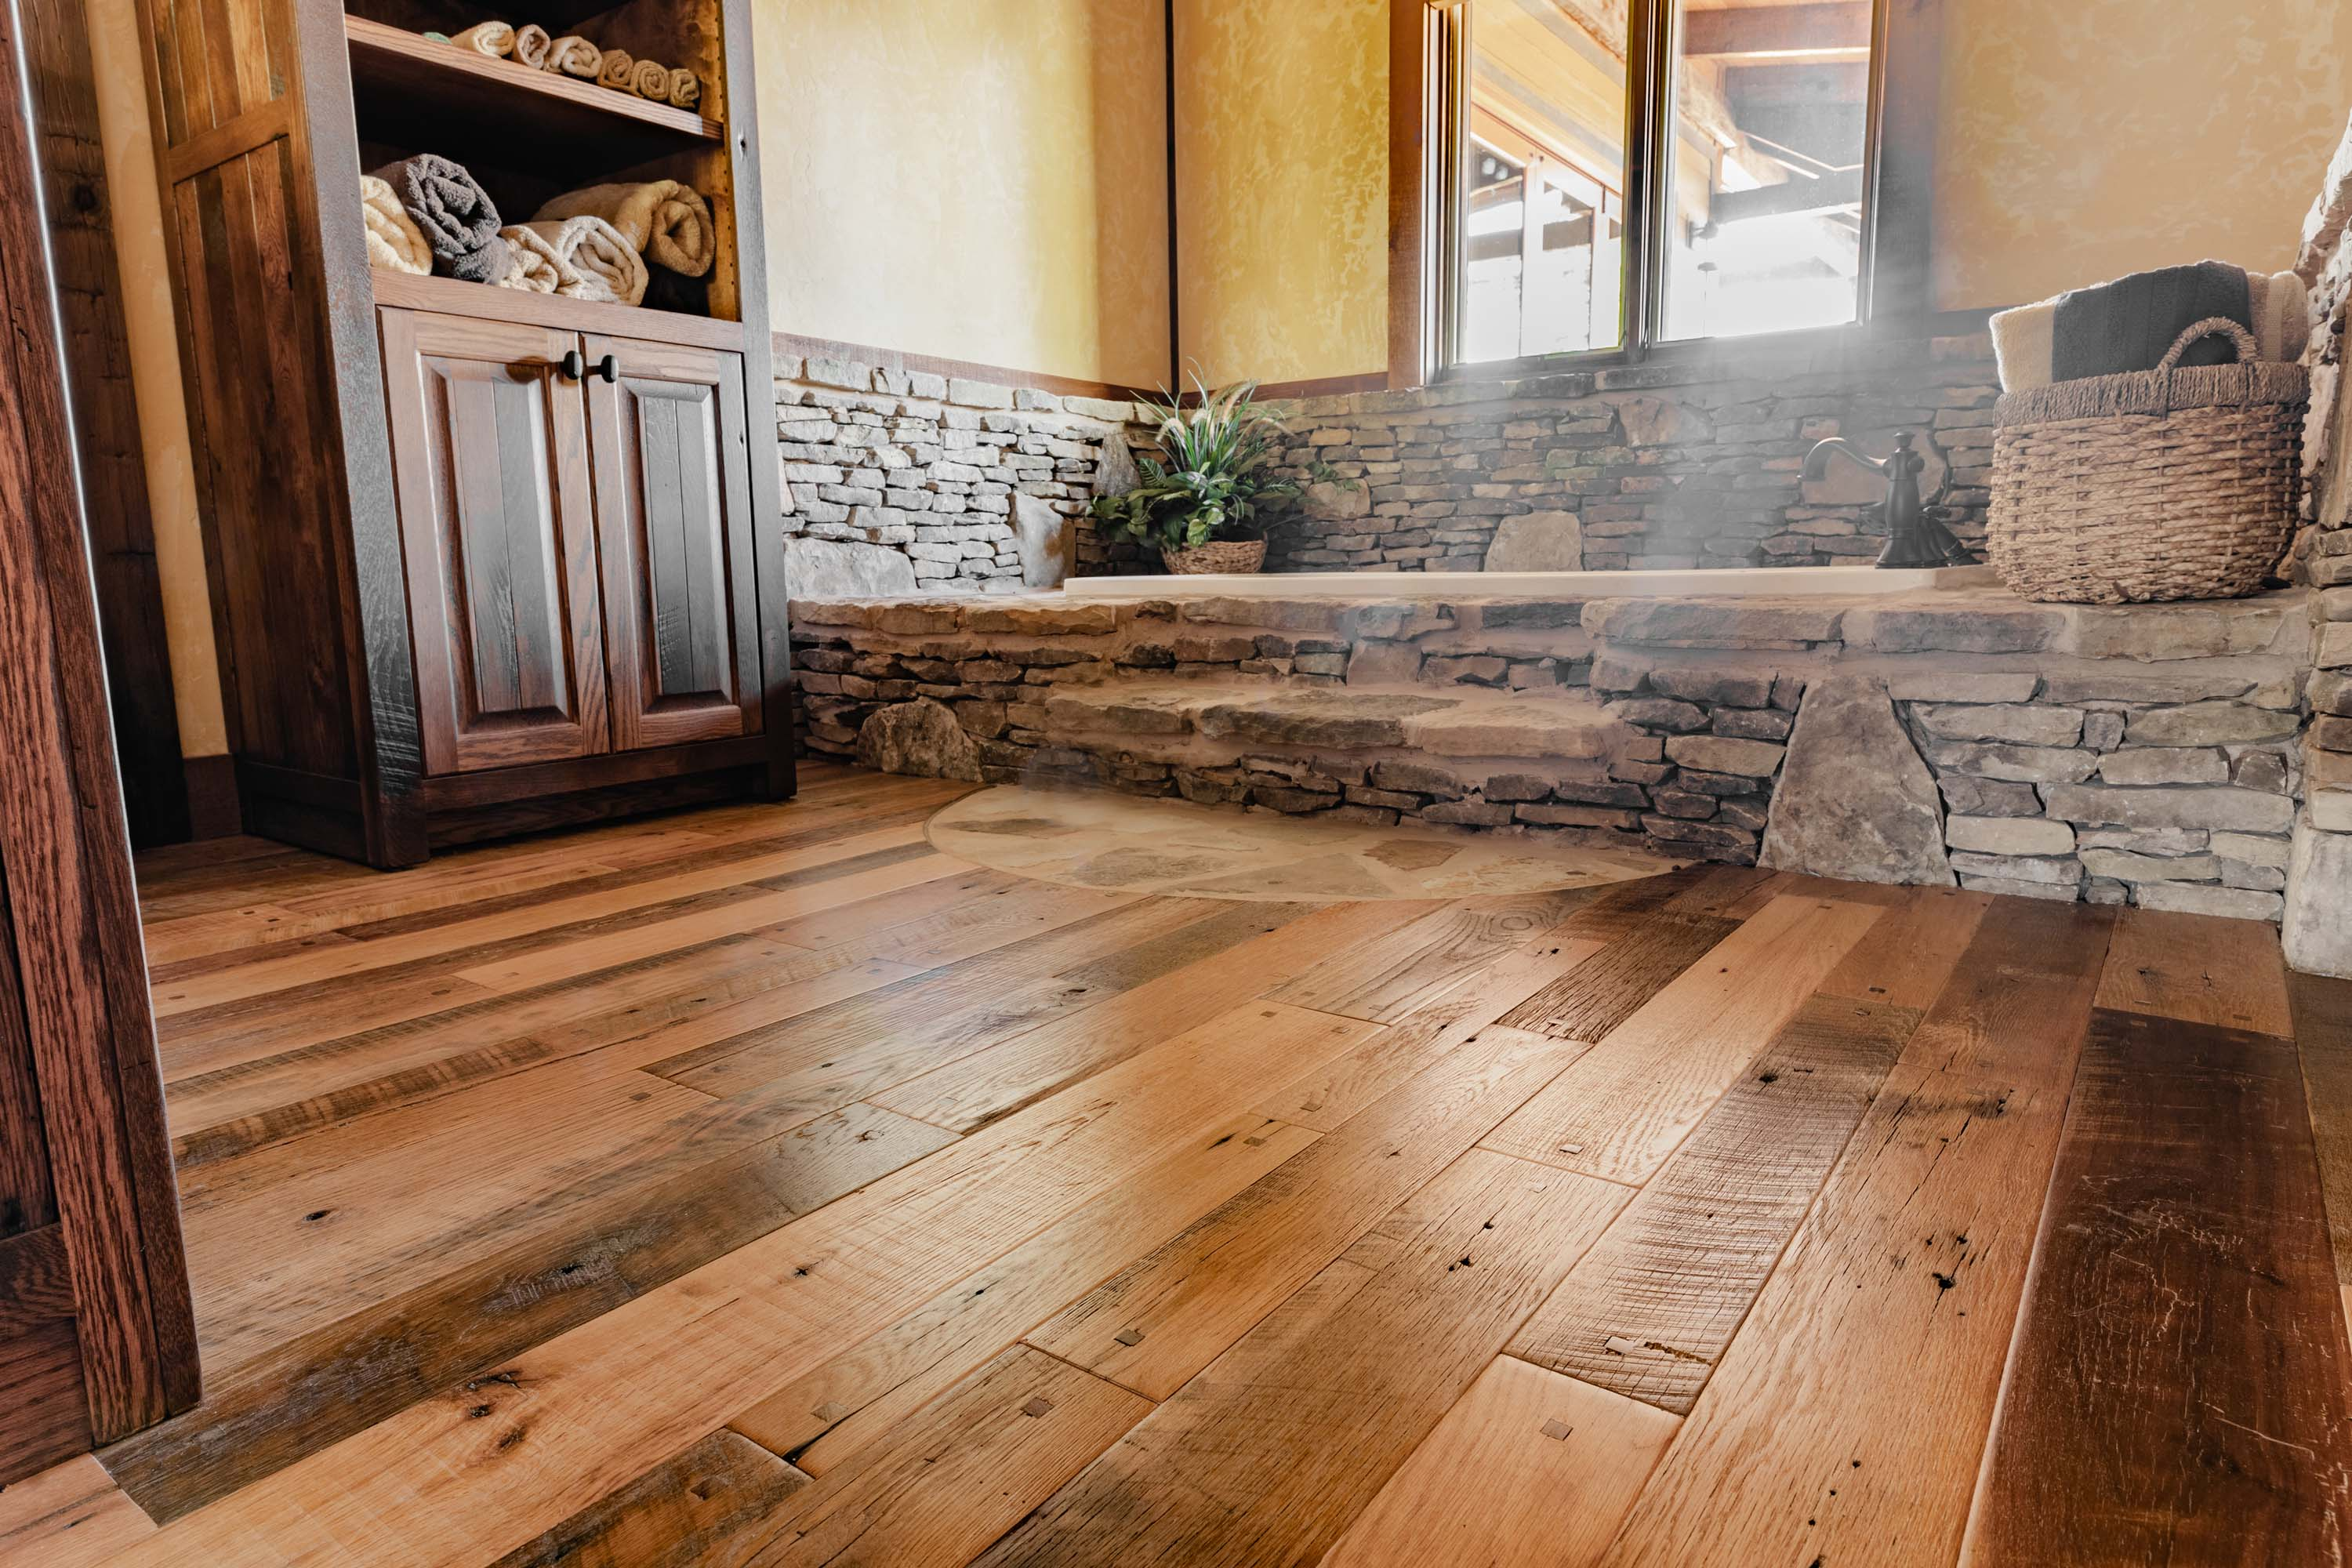 a bathroom in a cabin style house with reclaimed americana reclaimed wood flooring by Tennessee Wood Flooring. This hardwood floor is authentically made in the east tennessee area.